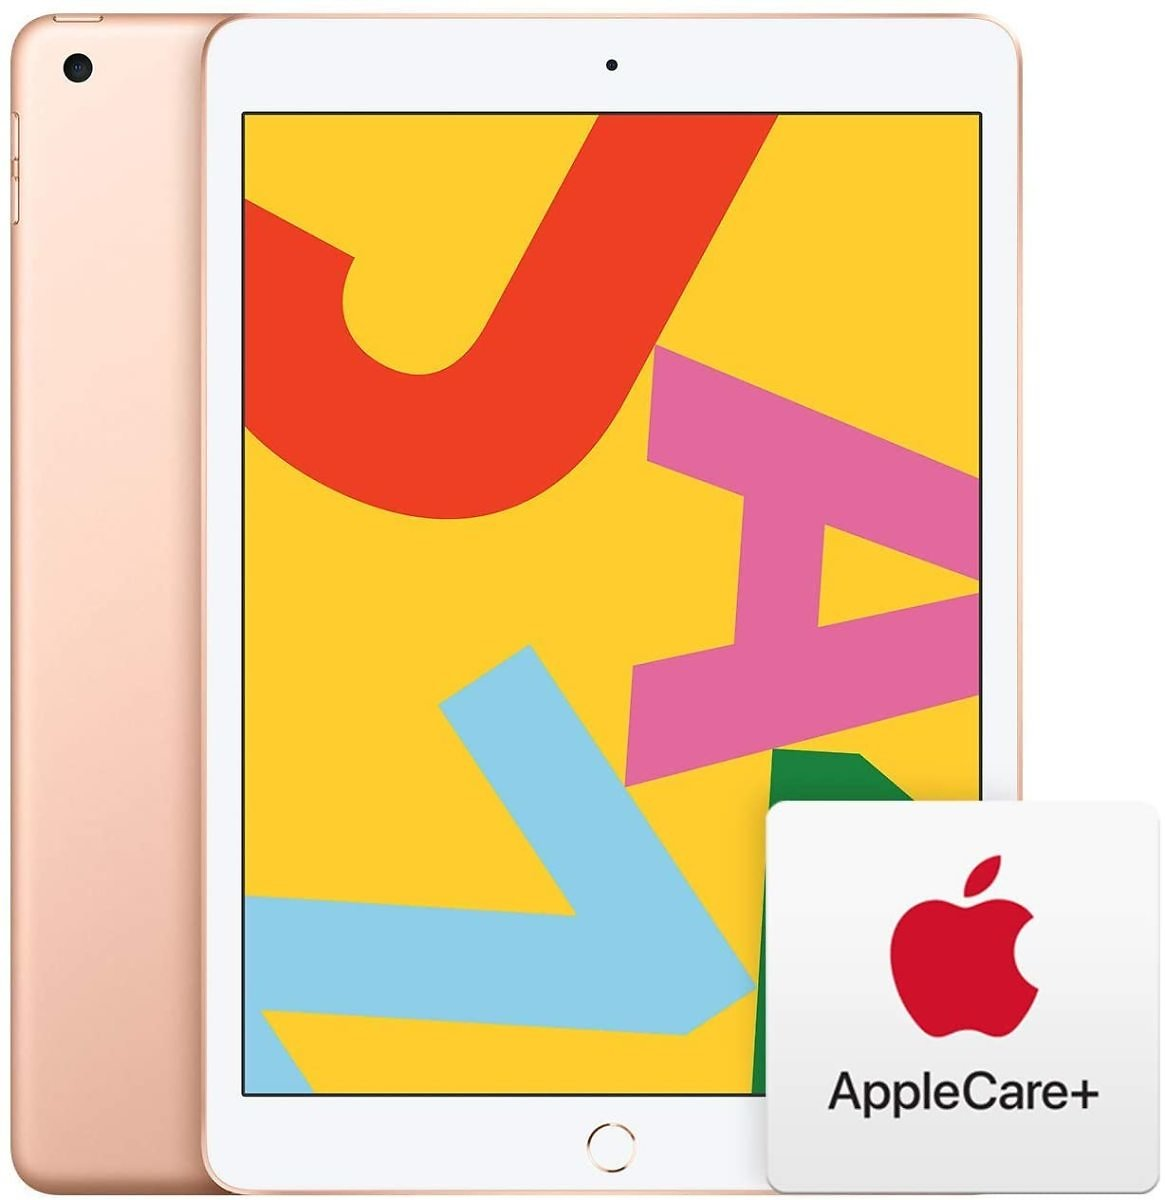 New Apple IPad (10.2-Inch, Wi-Fi, 128GB) - Gold (Latest Model) with AppleCare+ Bundle